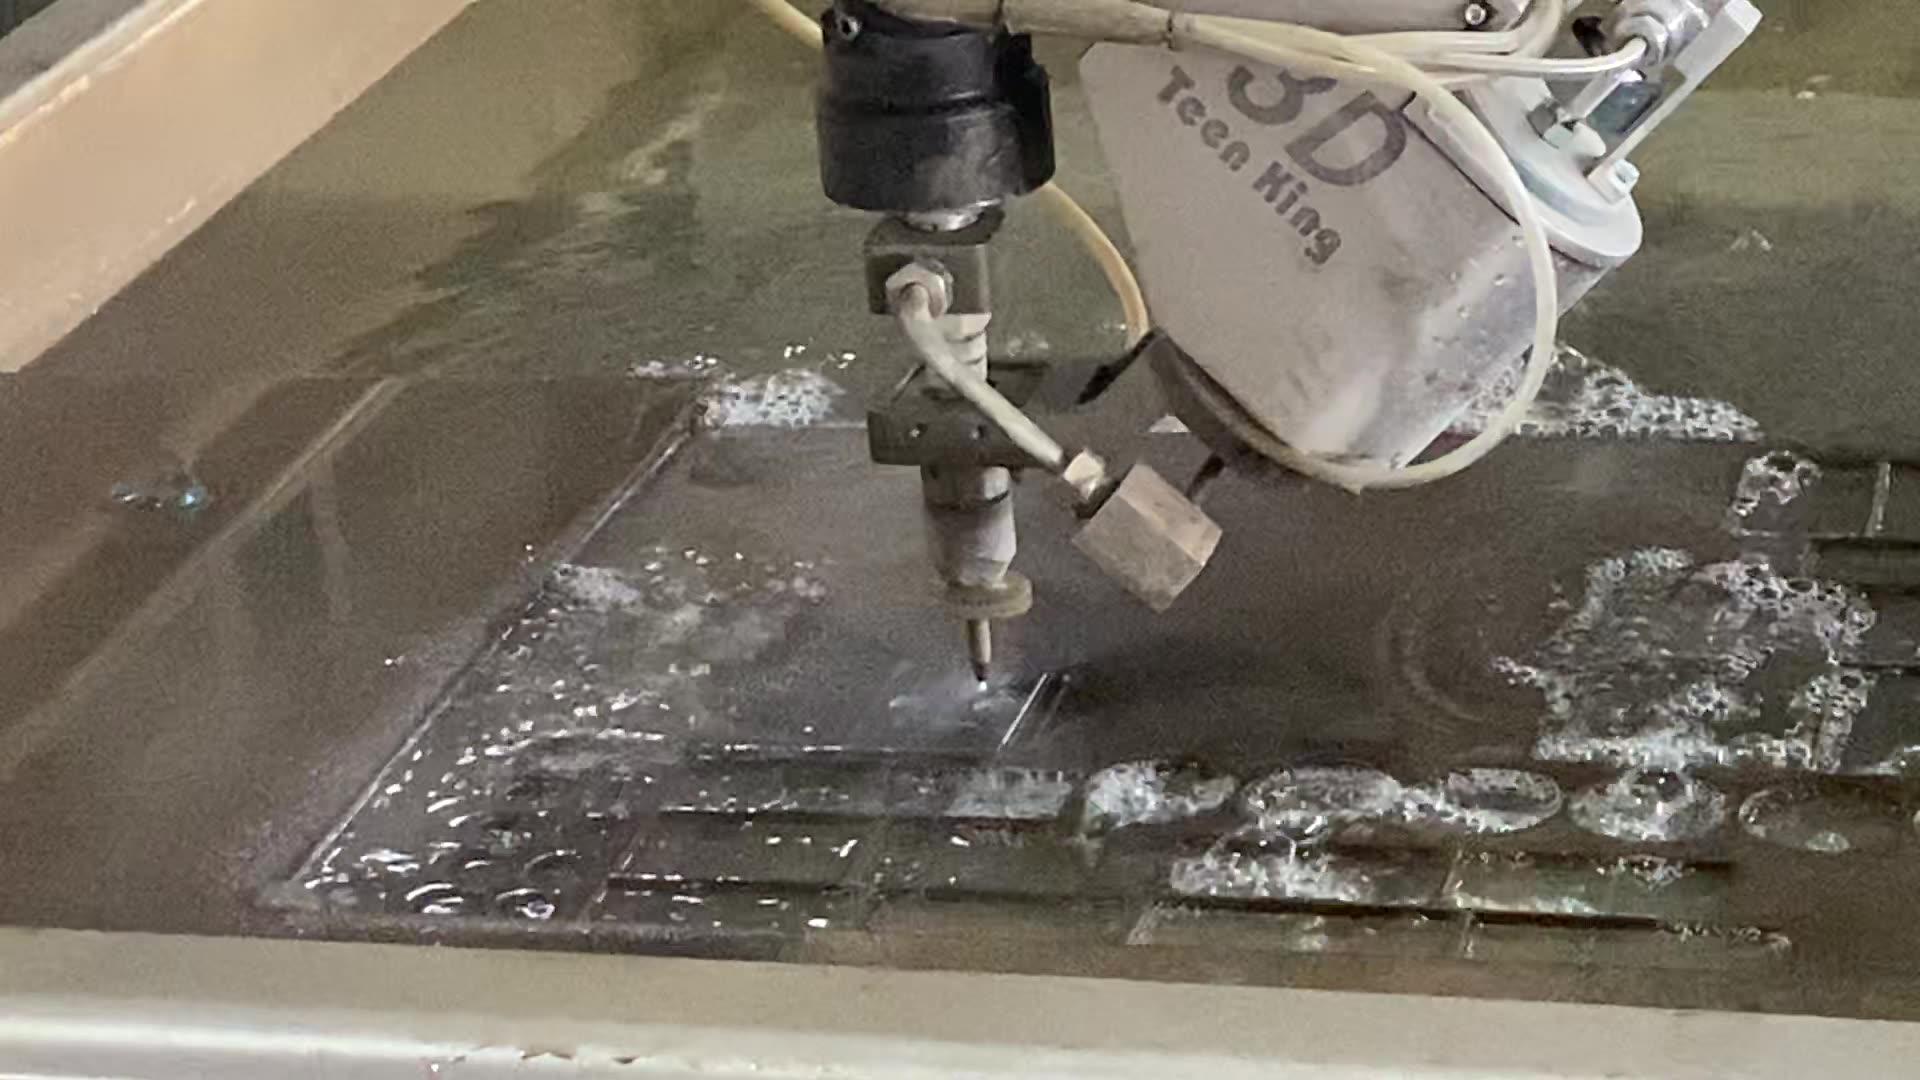 Waterjet cutting machine for parquet cutting